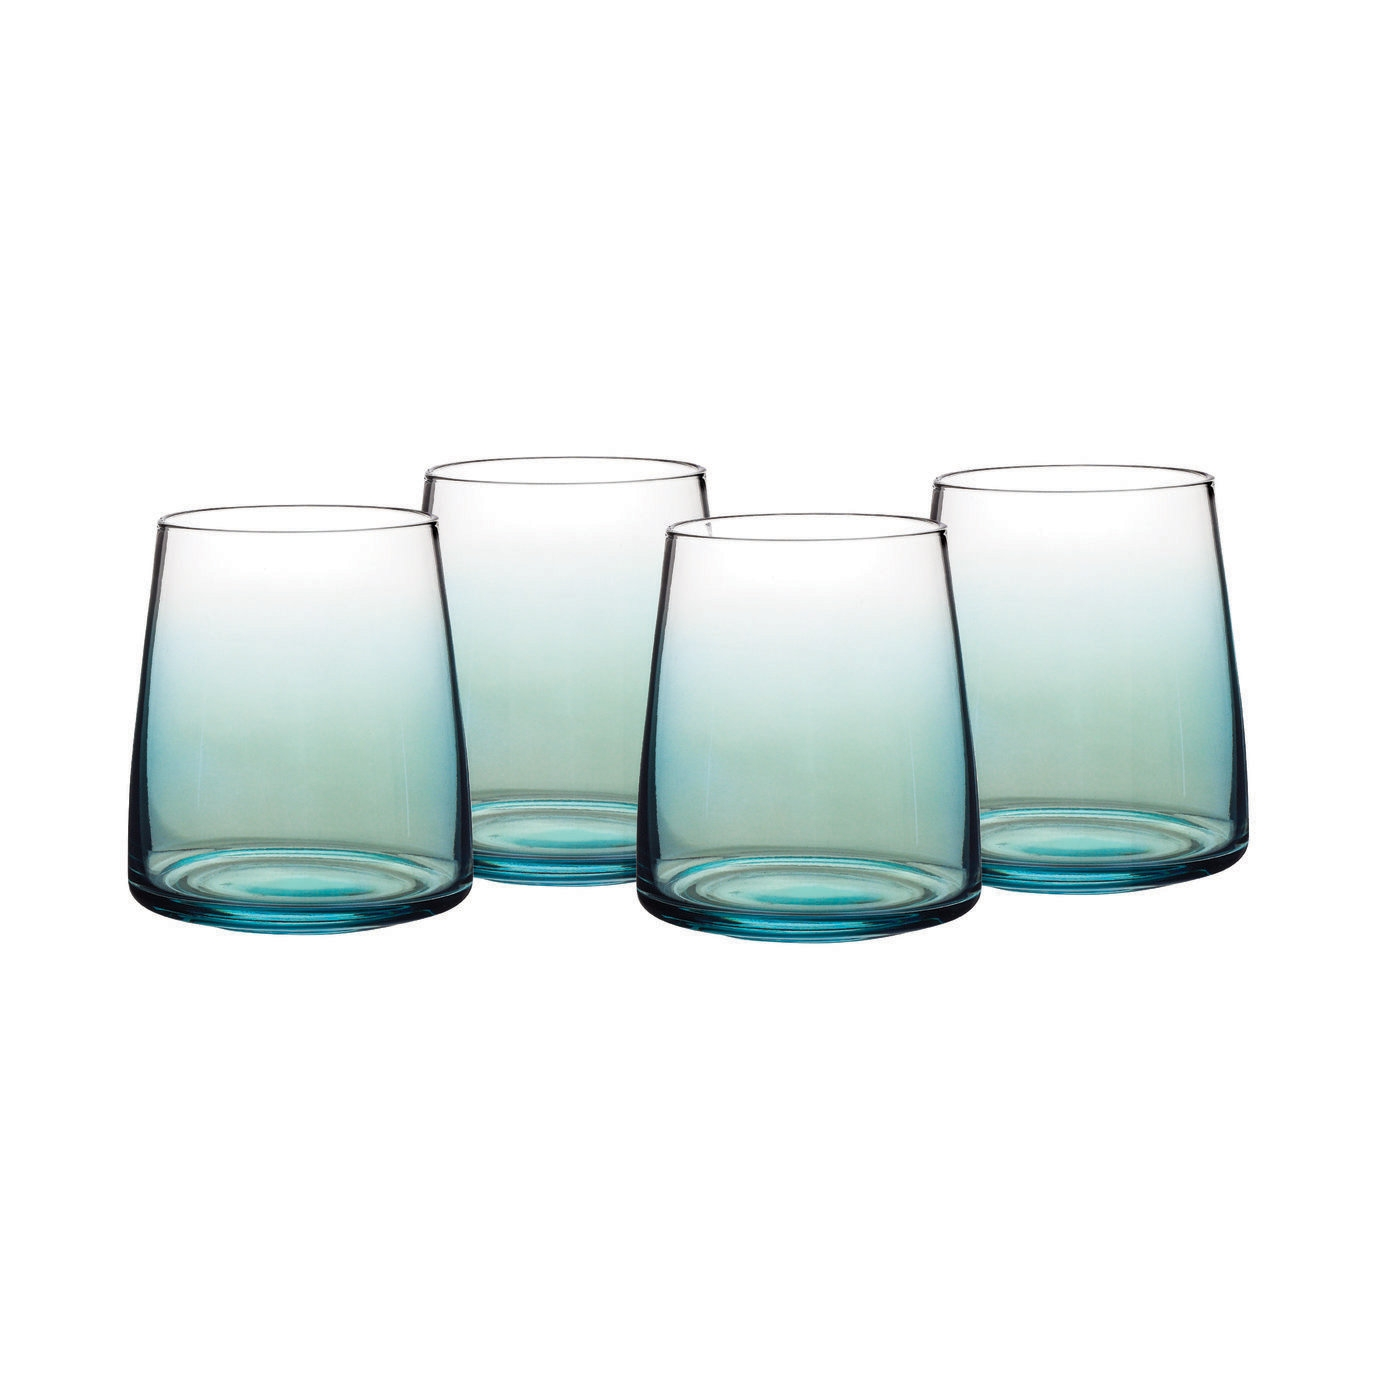 Portmeirion Atrium Stemless Wine Glass Set of 4 image number 0